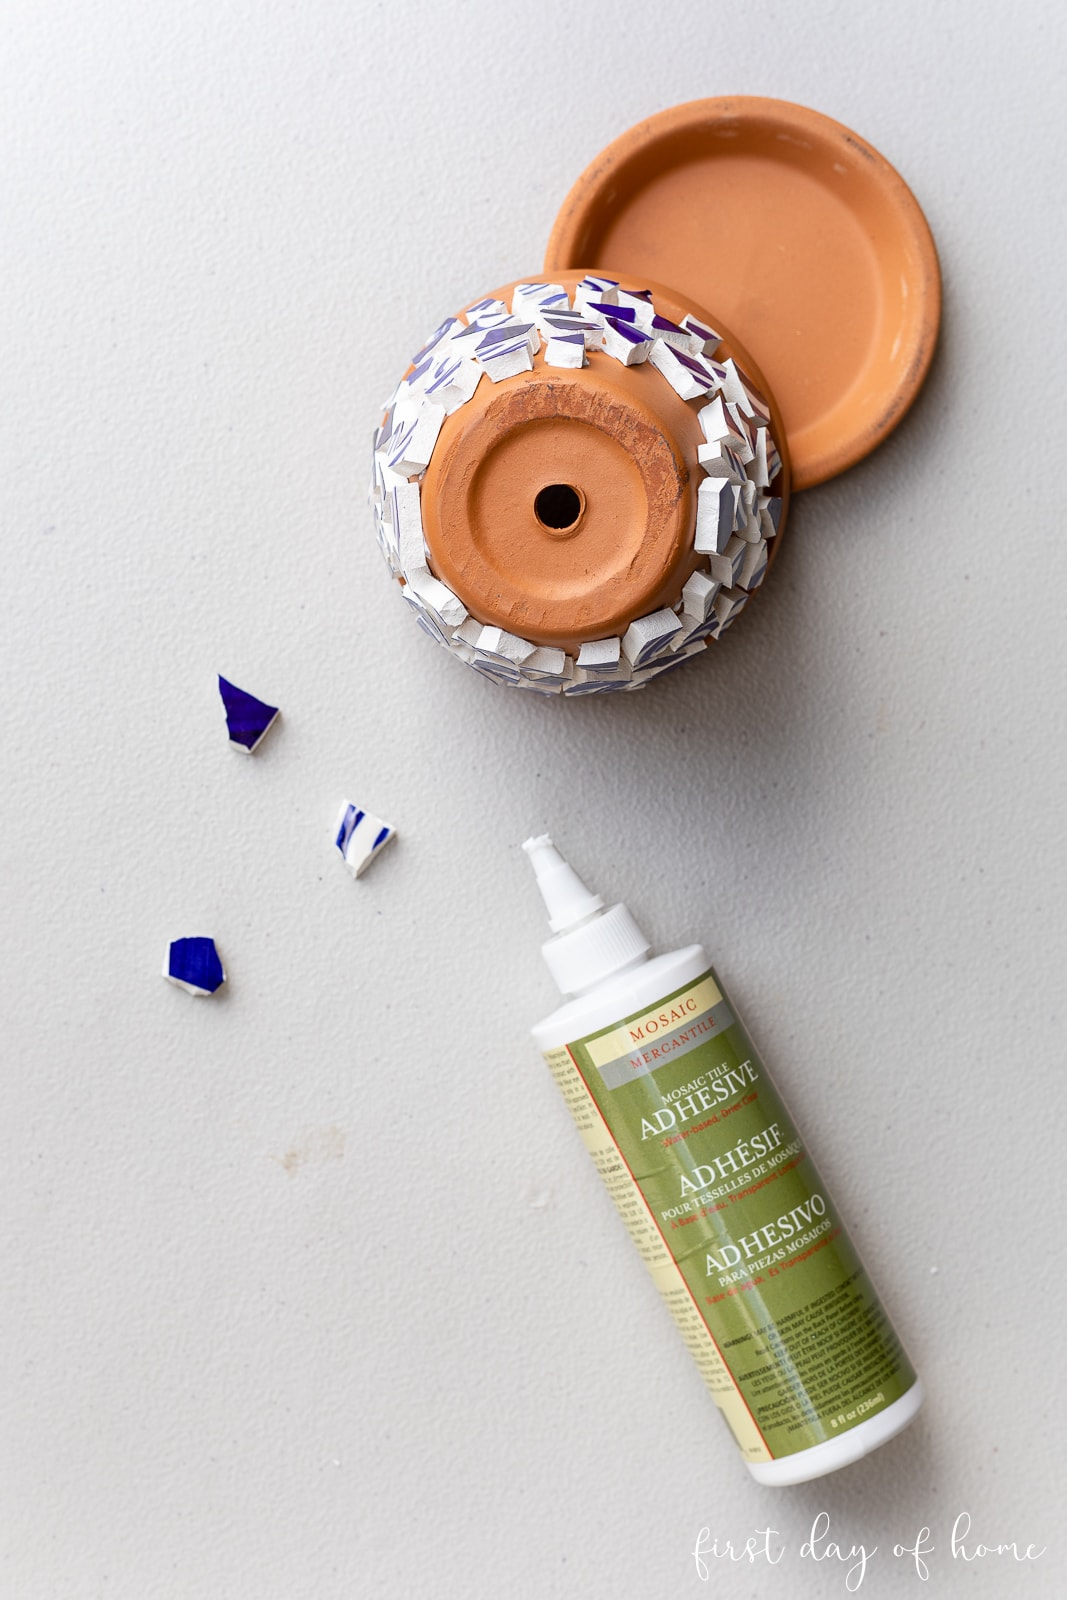 Tile adhesive and mosaic tile pieces with with terracotta pot